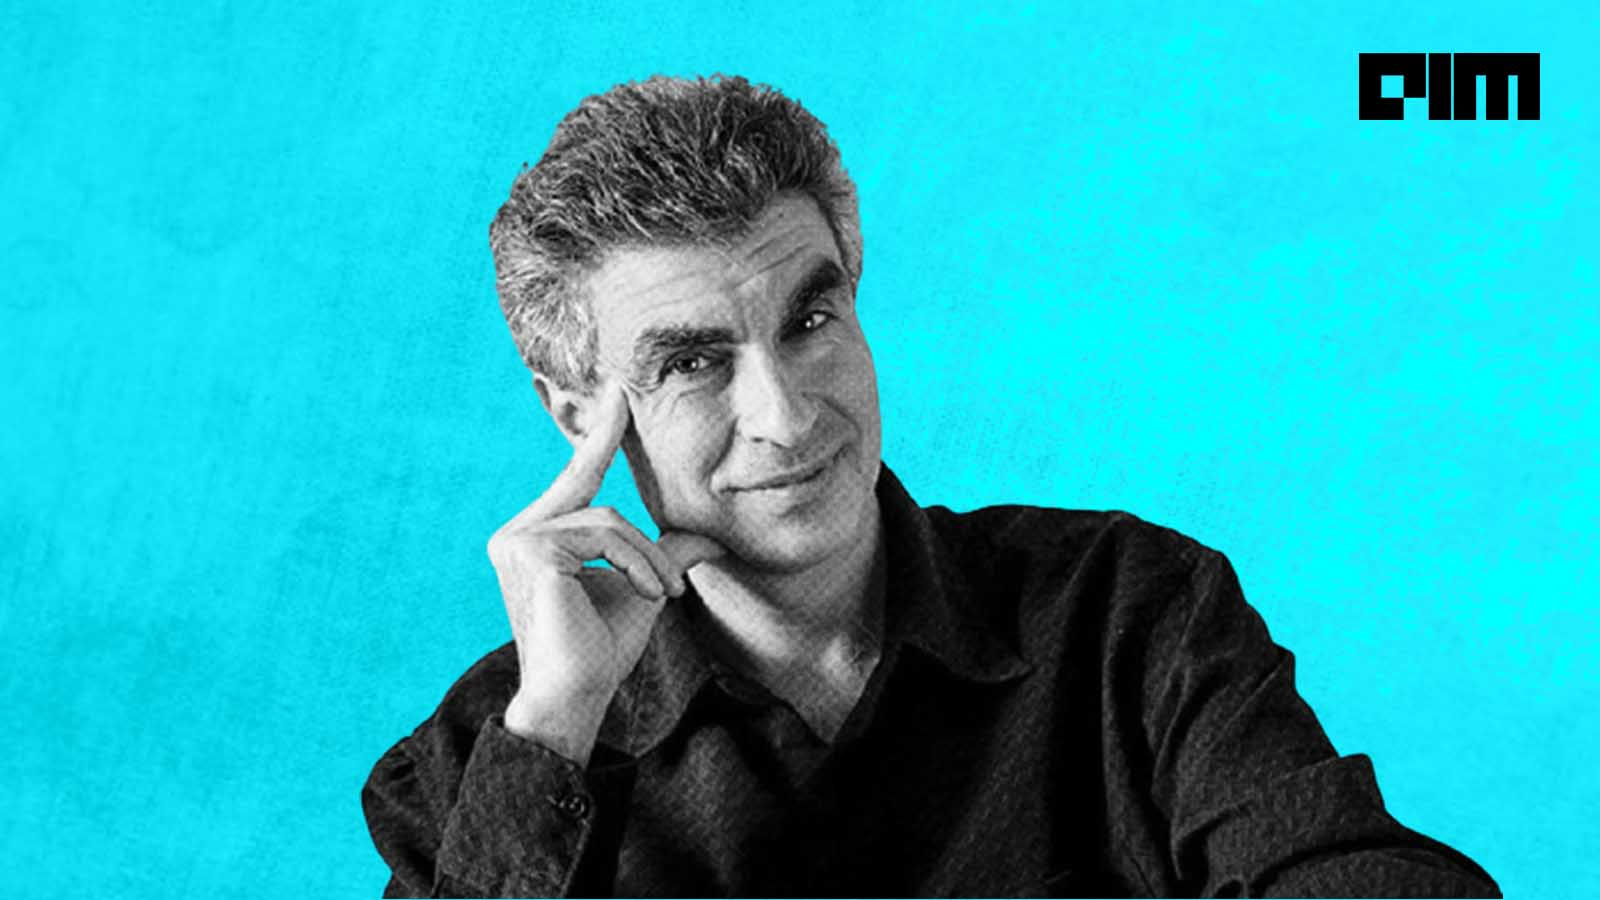 Yoshua Bengio & Why He Is Bullish About Causal Learning